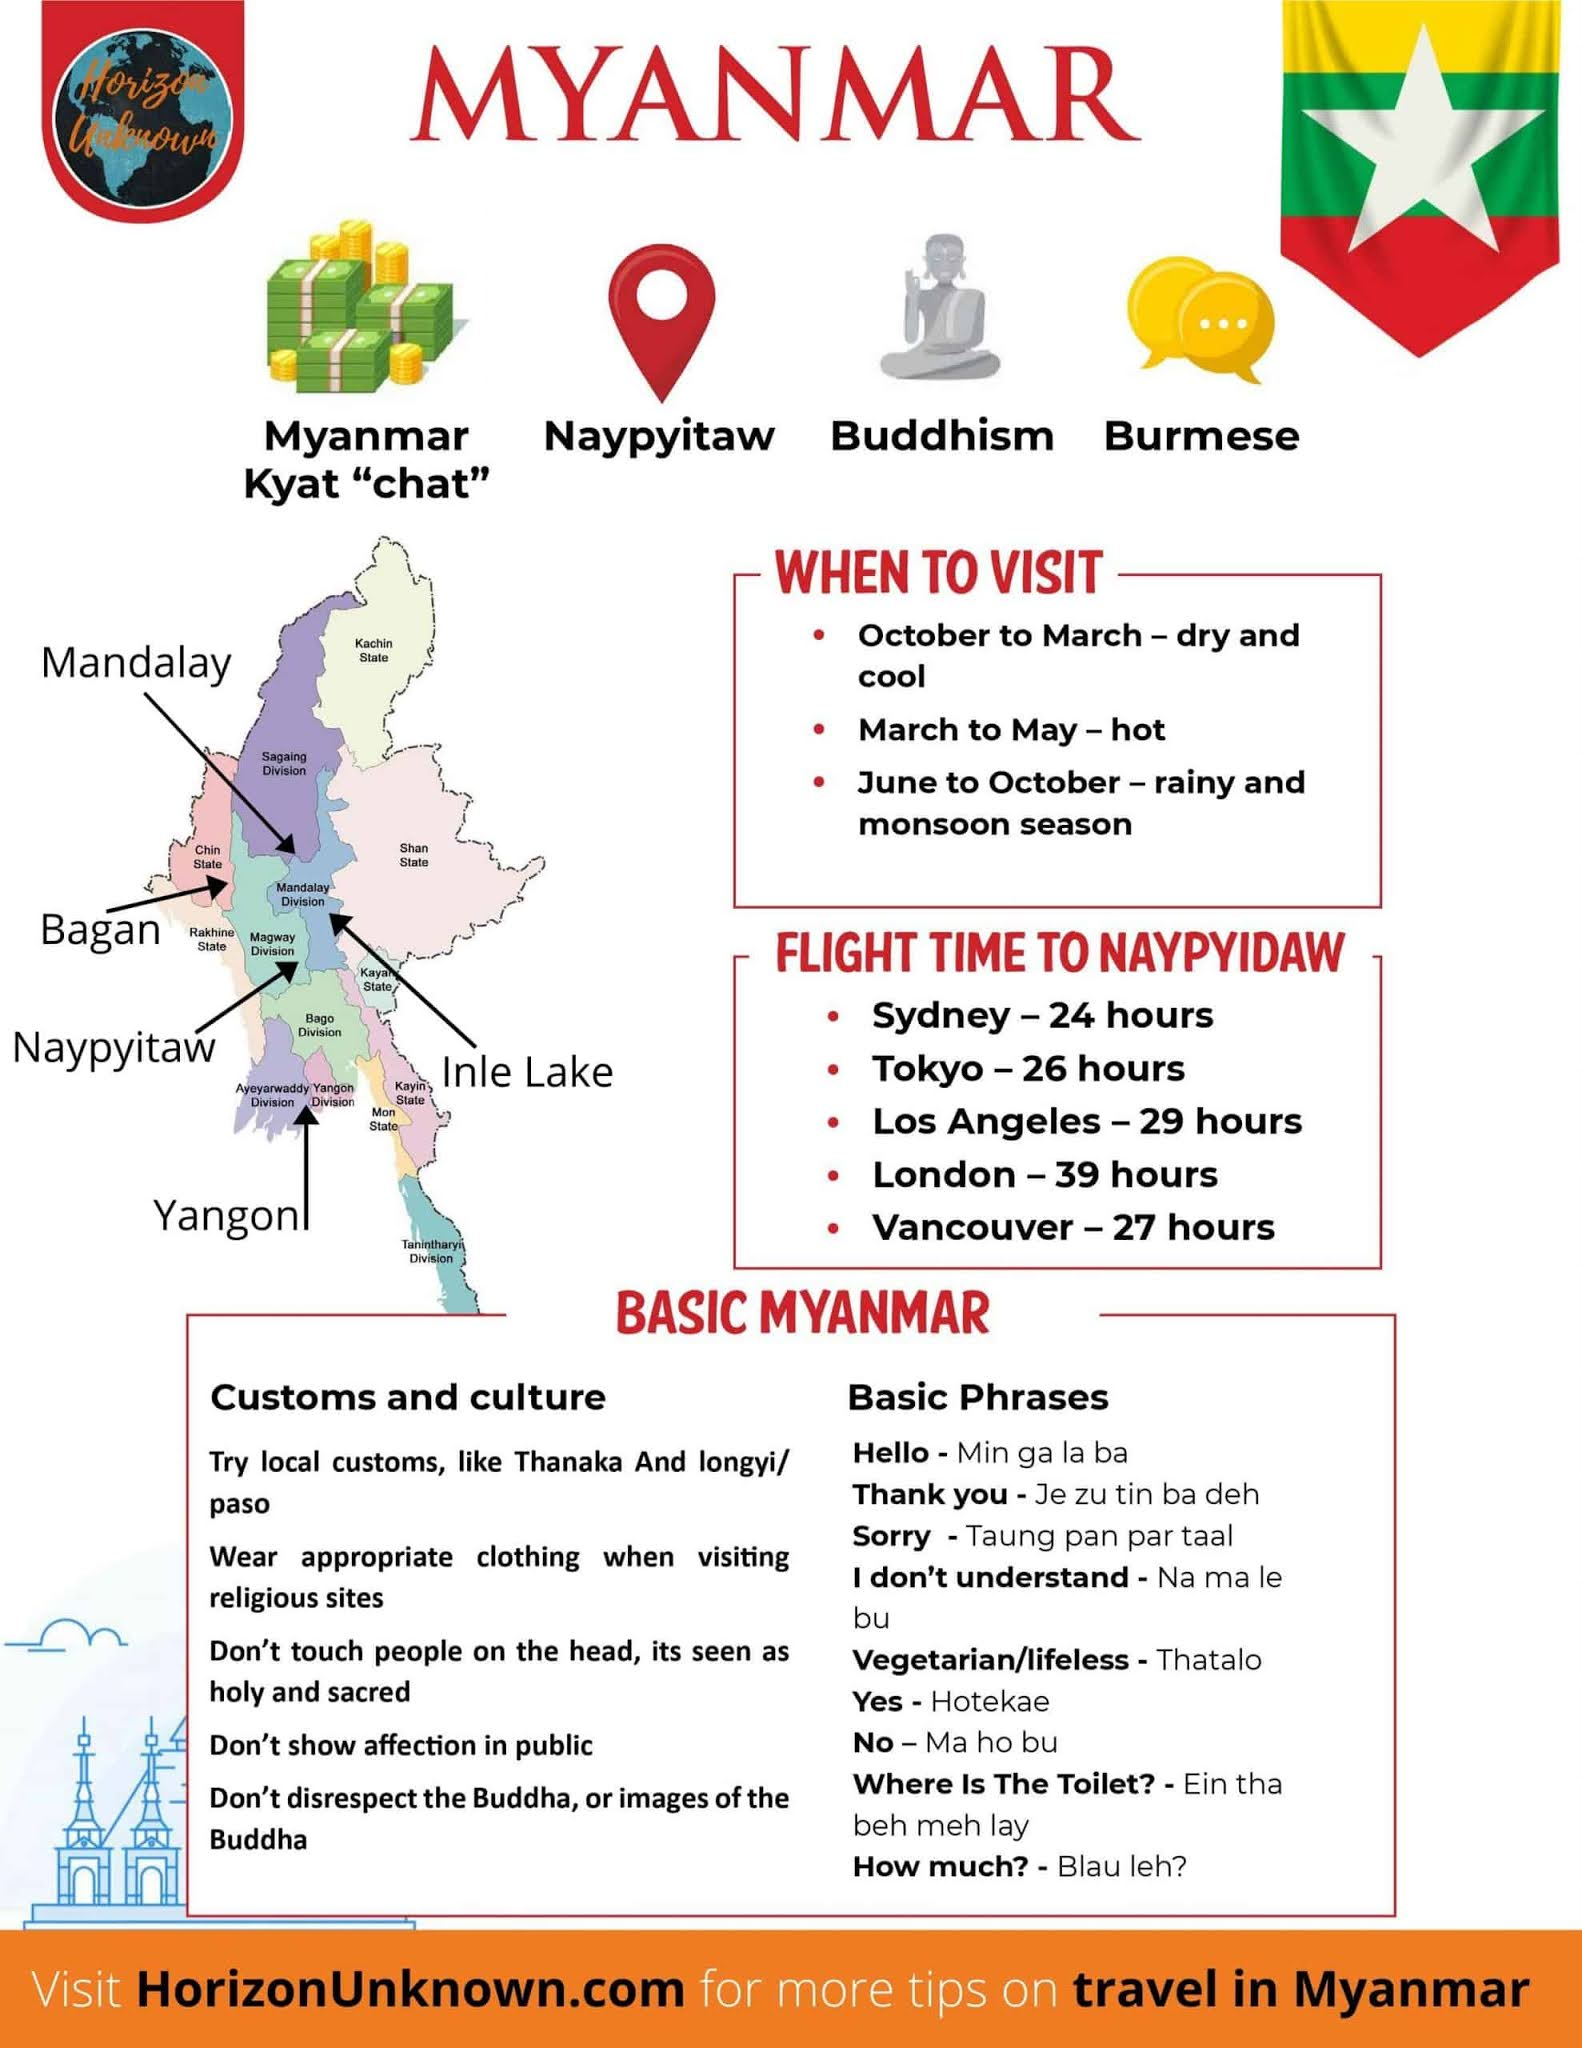 If you're looking to plan a trip in the future or just want to know more about the country, I've pulled 2 great Myanmar infographics for you.